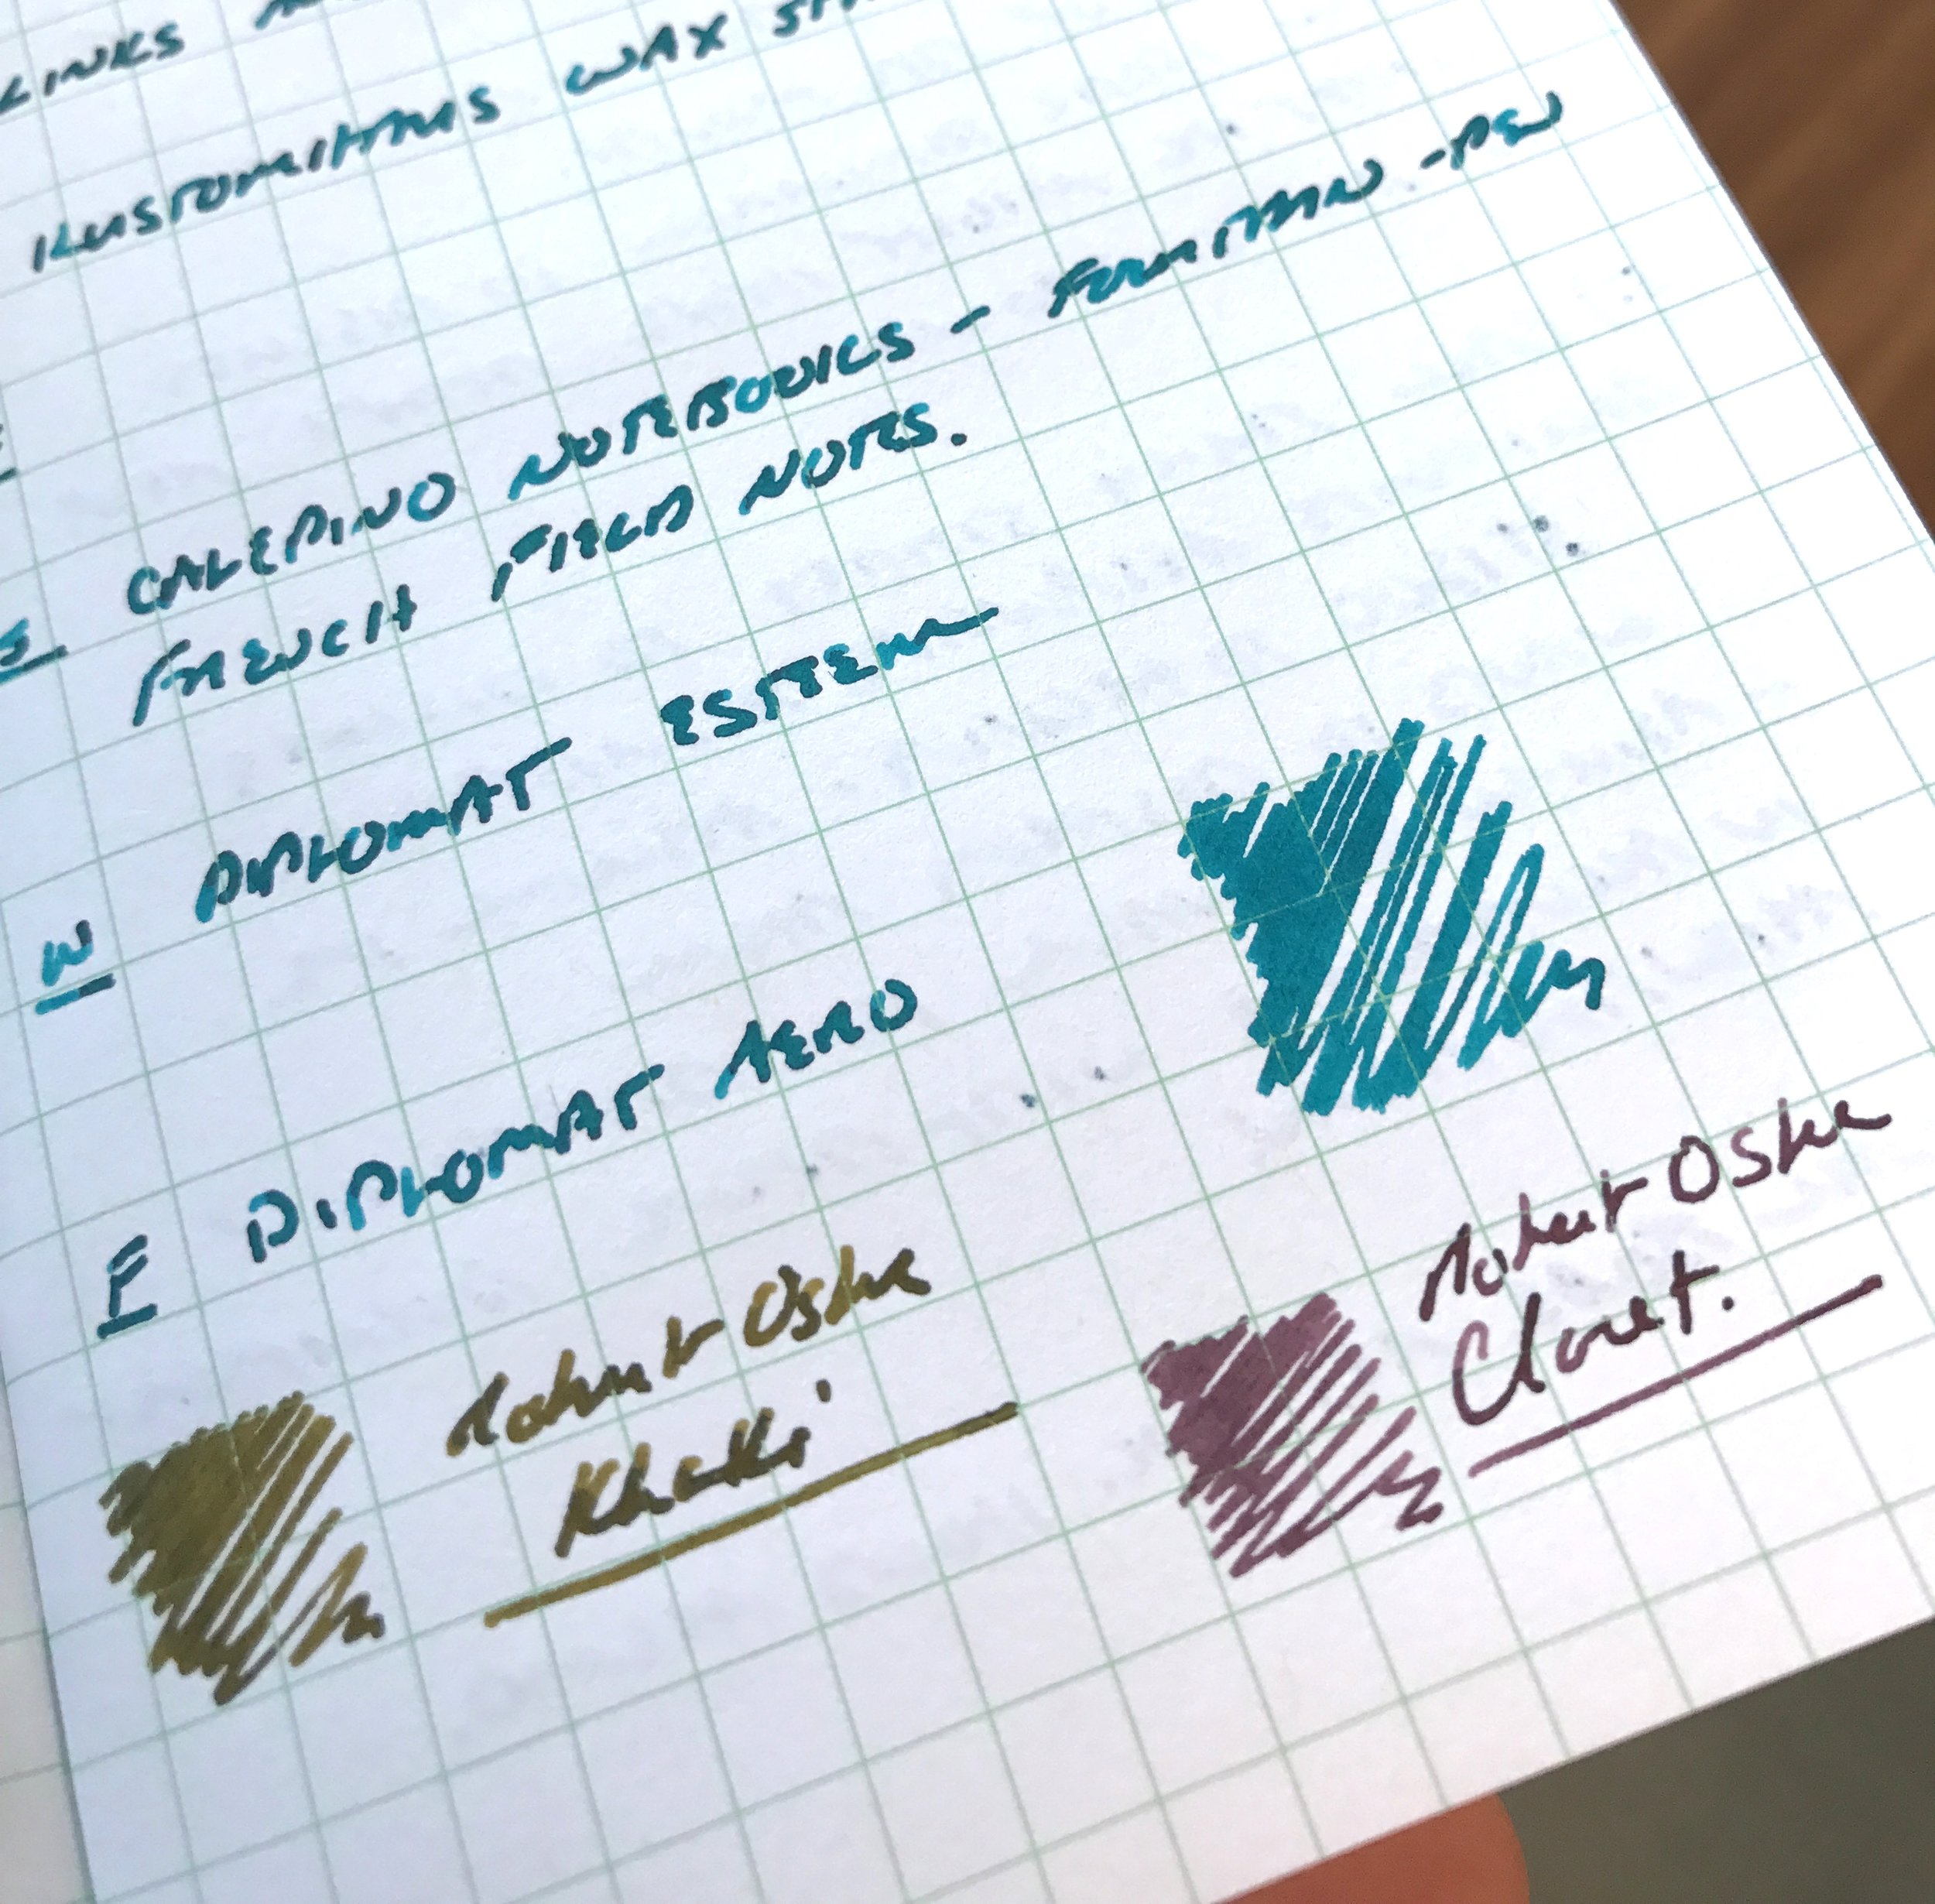 """Here's another """"action shot"""" of Robert Oster Tranquility, Khaki, and Claret on Calepino notebook paper. This picture shows off the shading a bit better than some of the other writing samples, especially in the Tranquility and Khaki."""